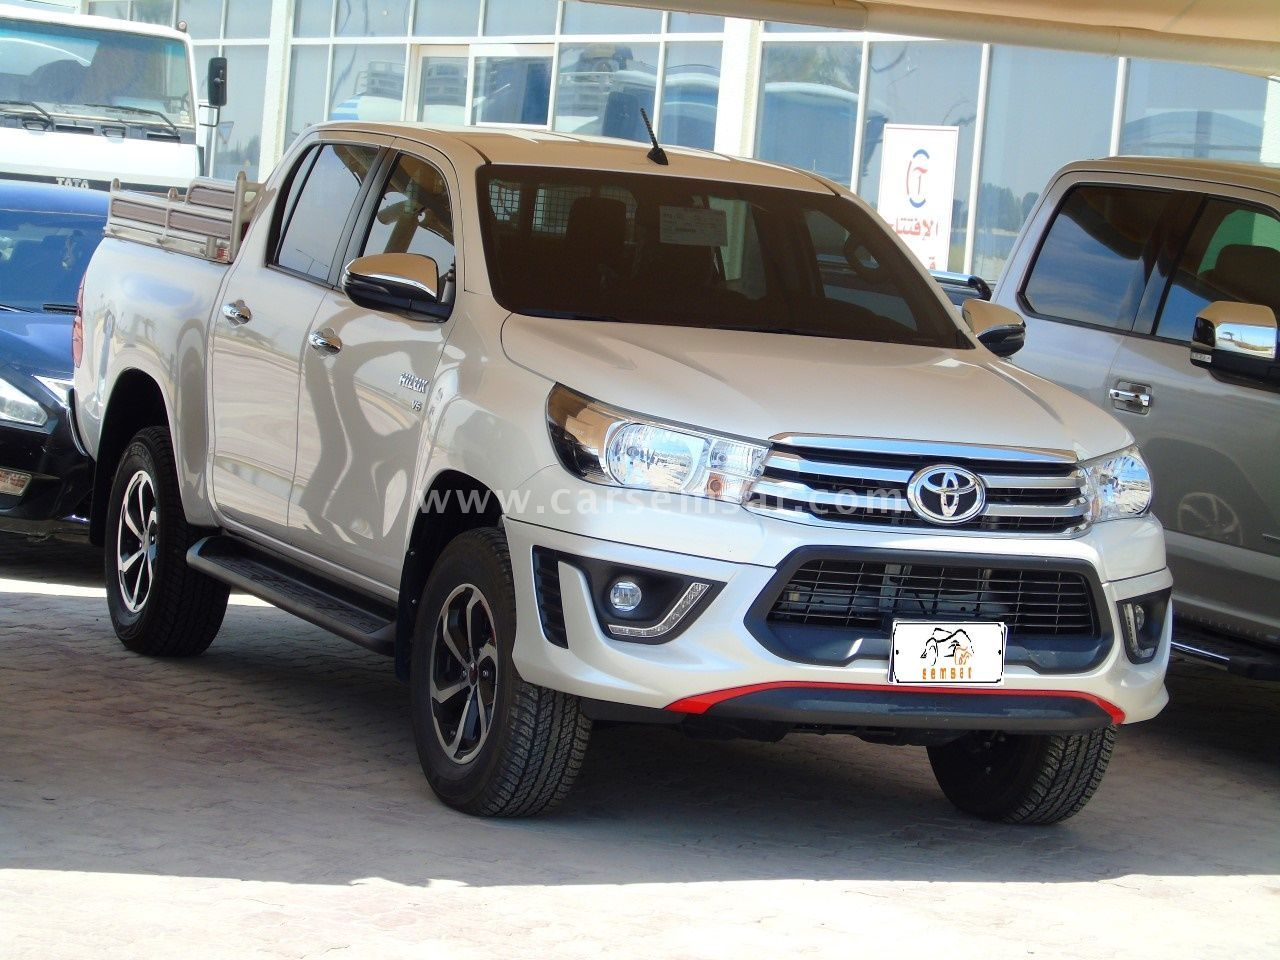 2018 Toyota Hilux 4 0 4x4 TRD for sale in Qatar - New and